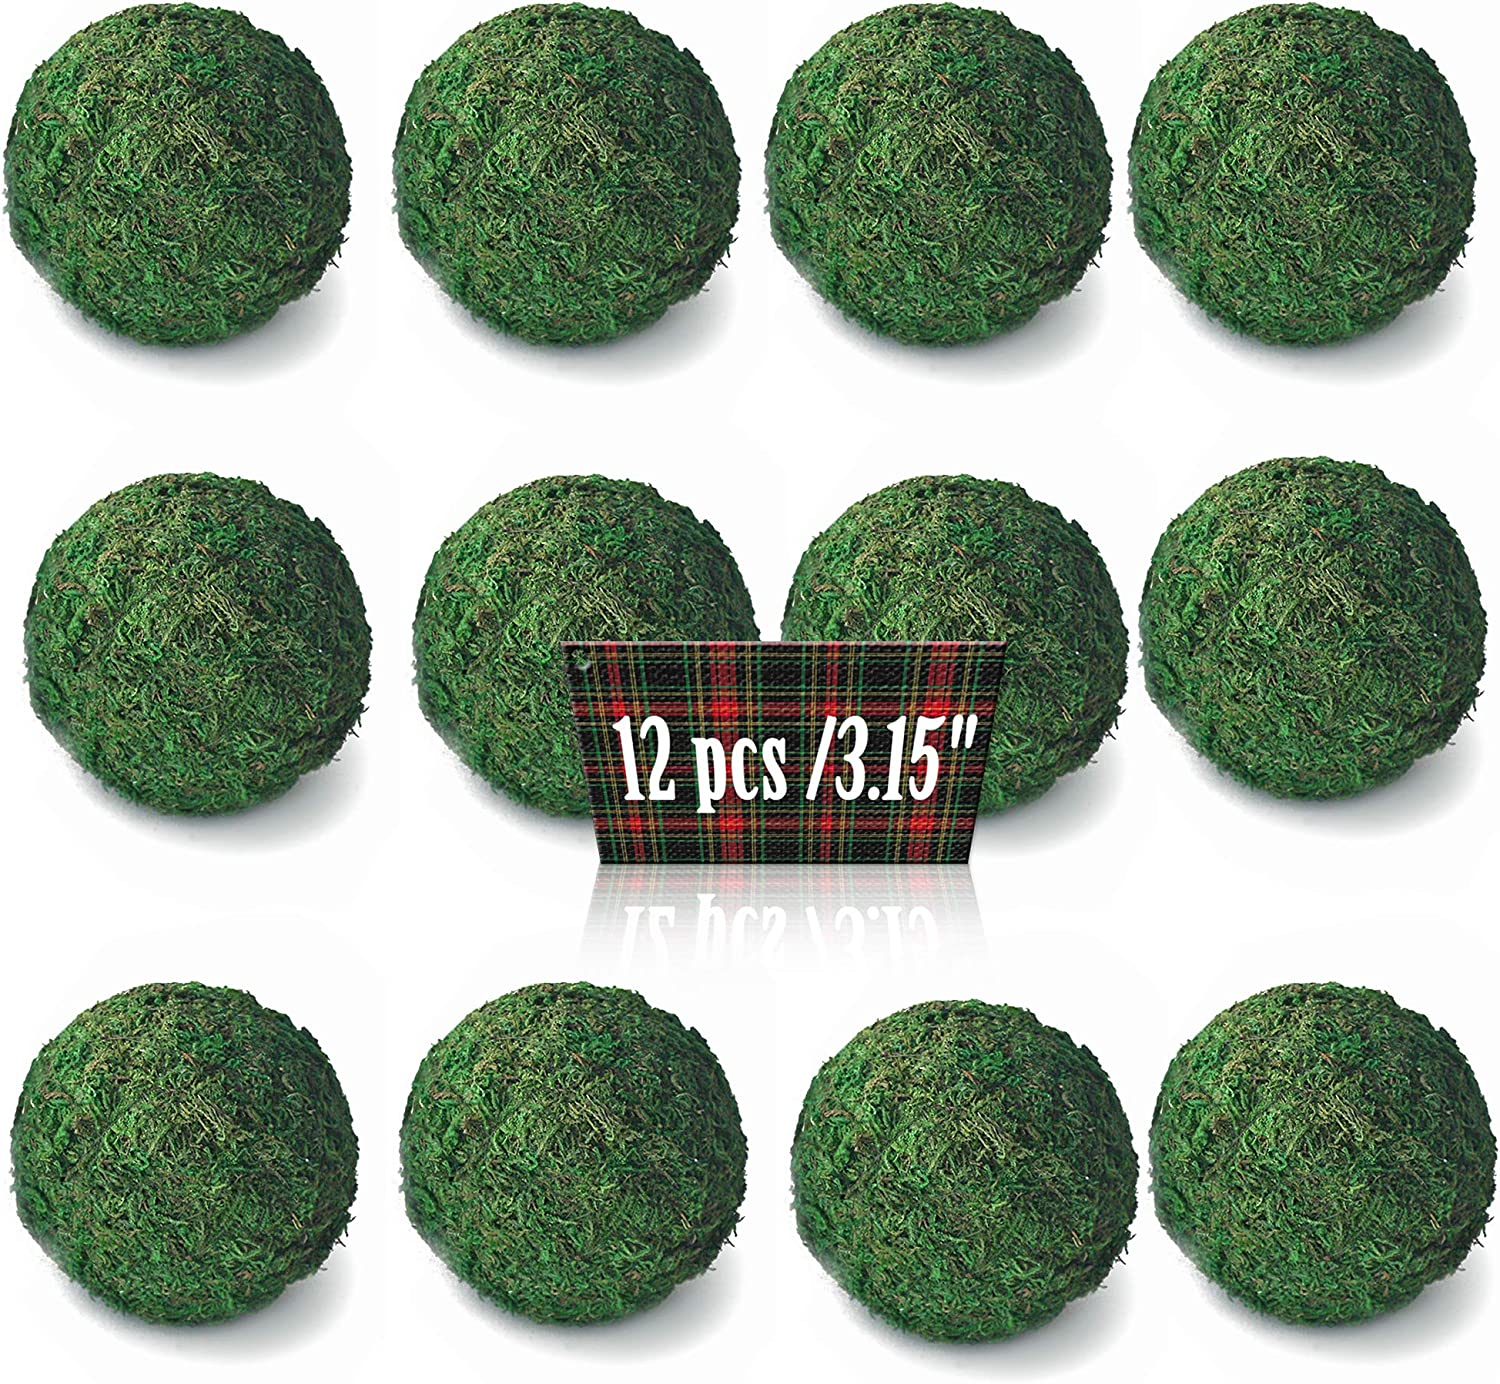 Qingbei Rina Dried Authentic Green Moss Ball Table Decor (3.15 inches,Set of 12)